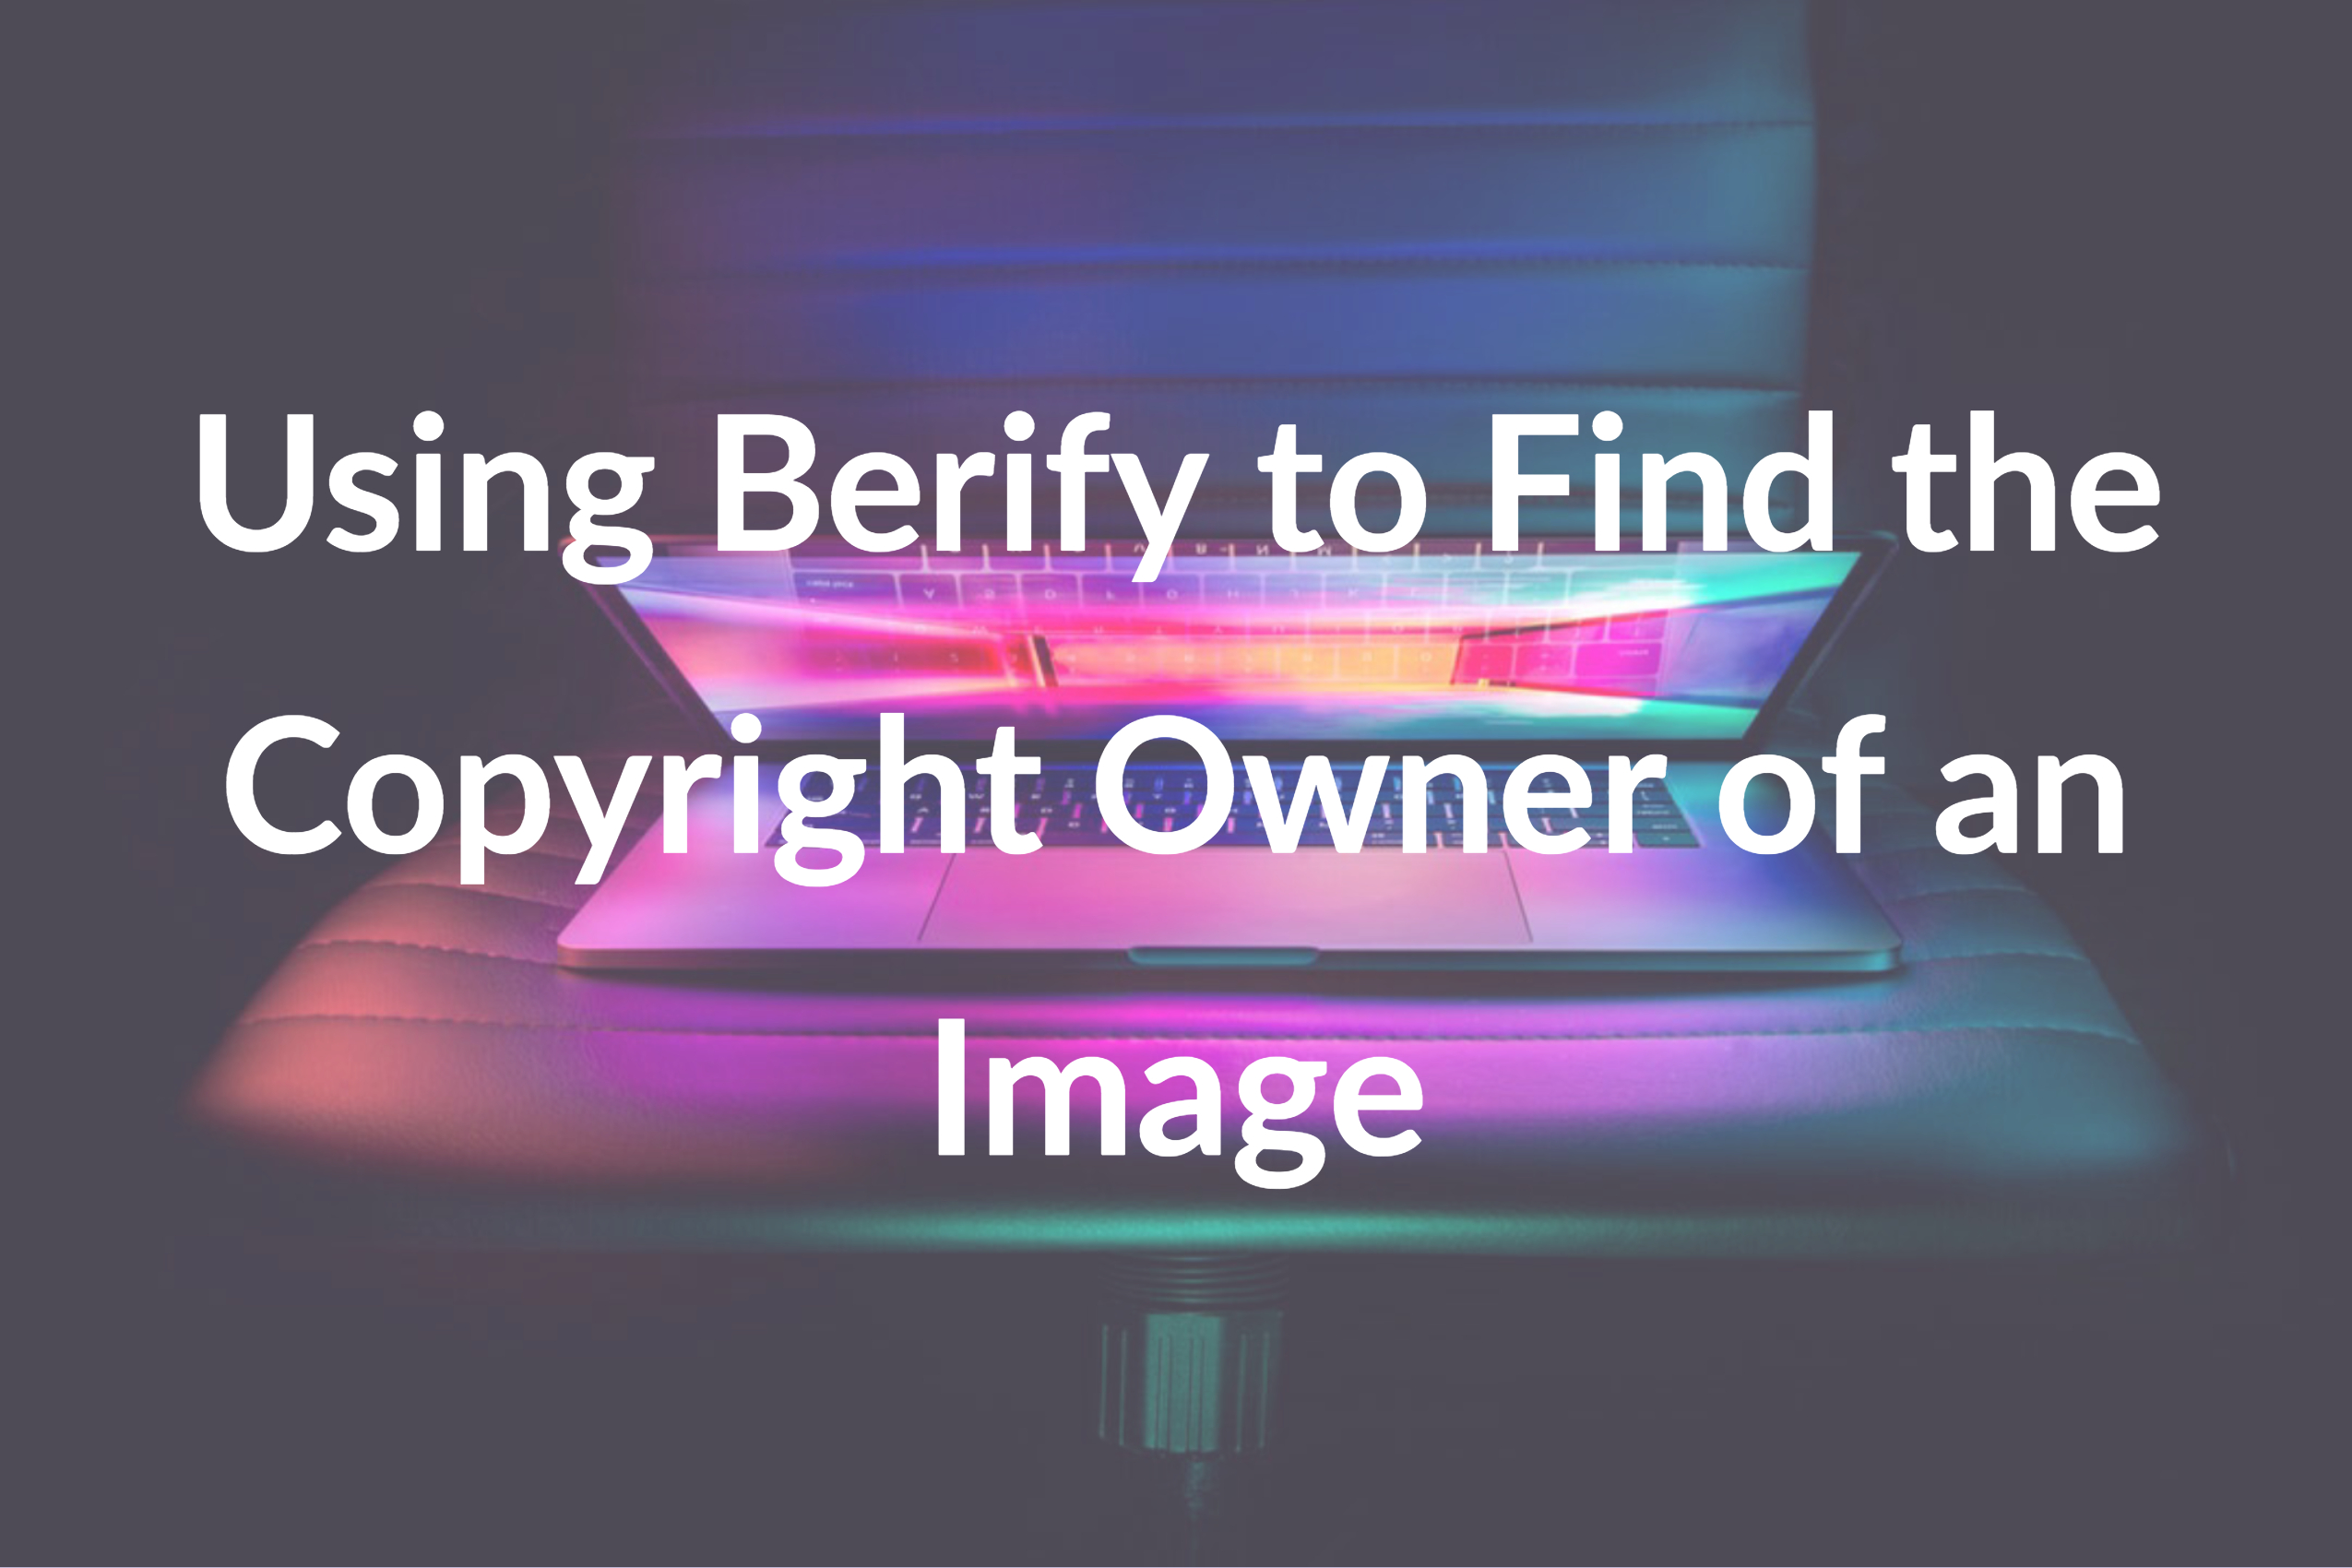 Using Berify to Find the Copyright Owner of an Image